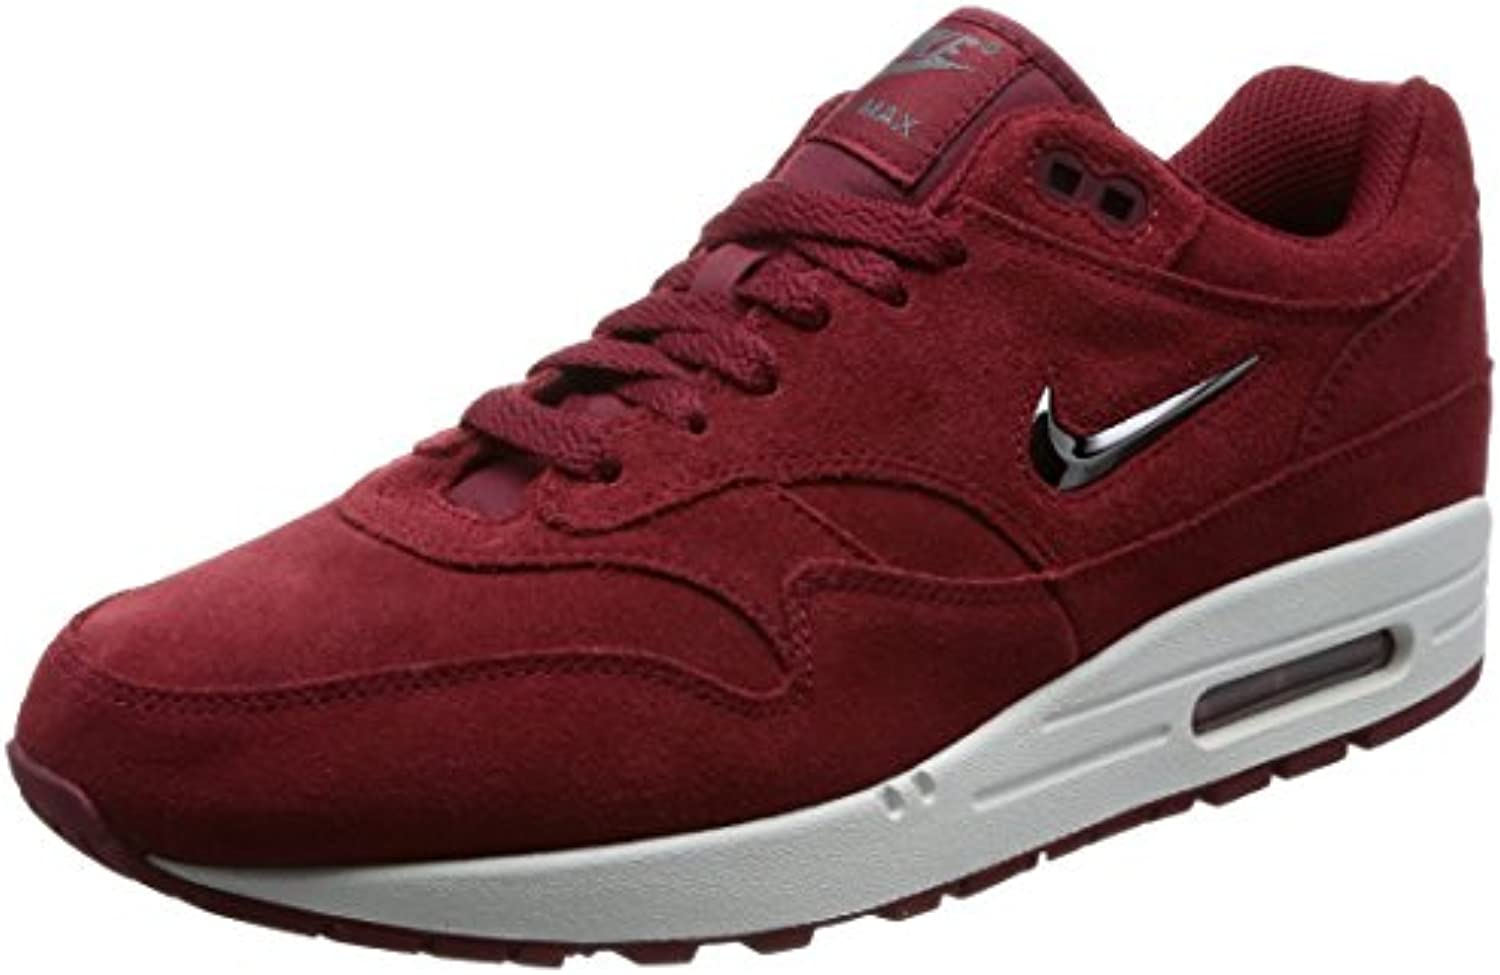 Nike Air Max 1 AM1 Premium SC Special Category  Team Red  Velvet Jewell Retro, Schuhe Herren